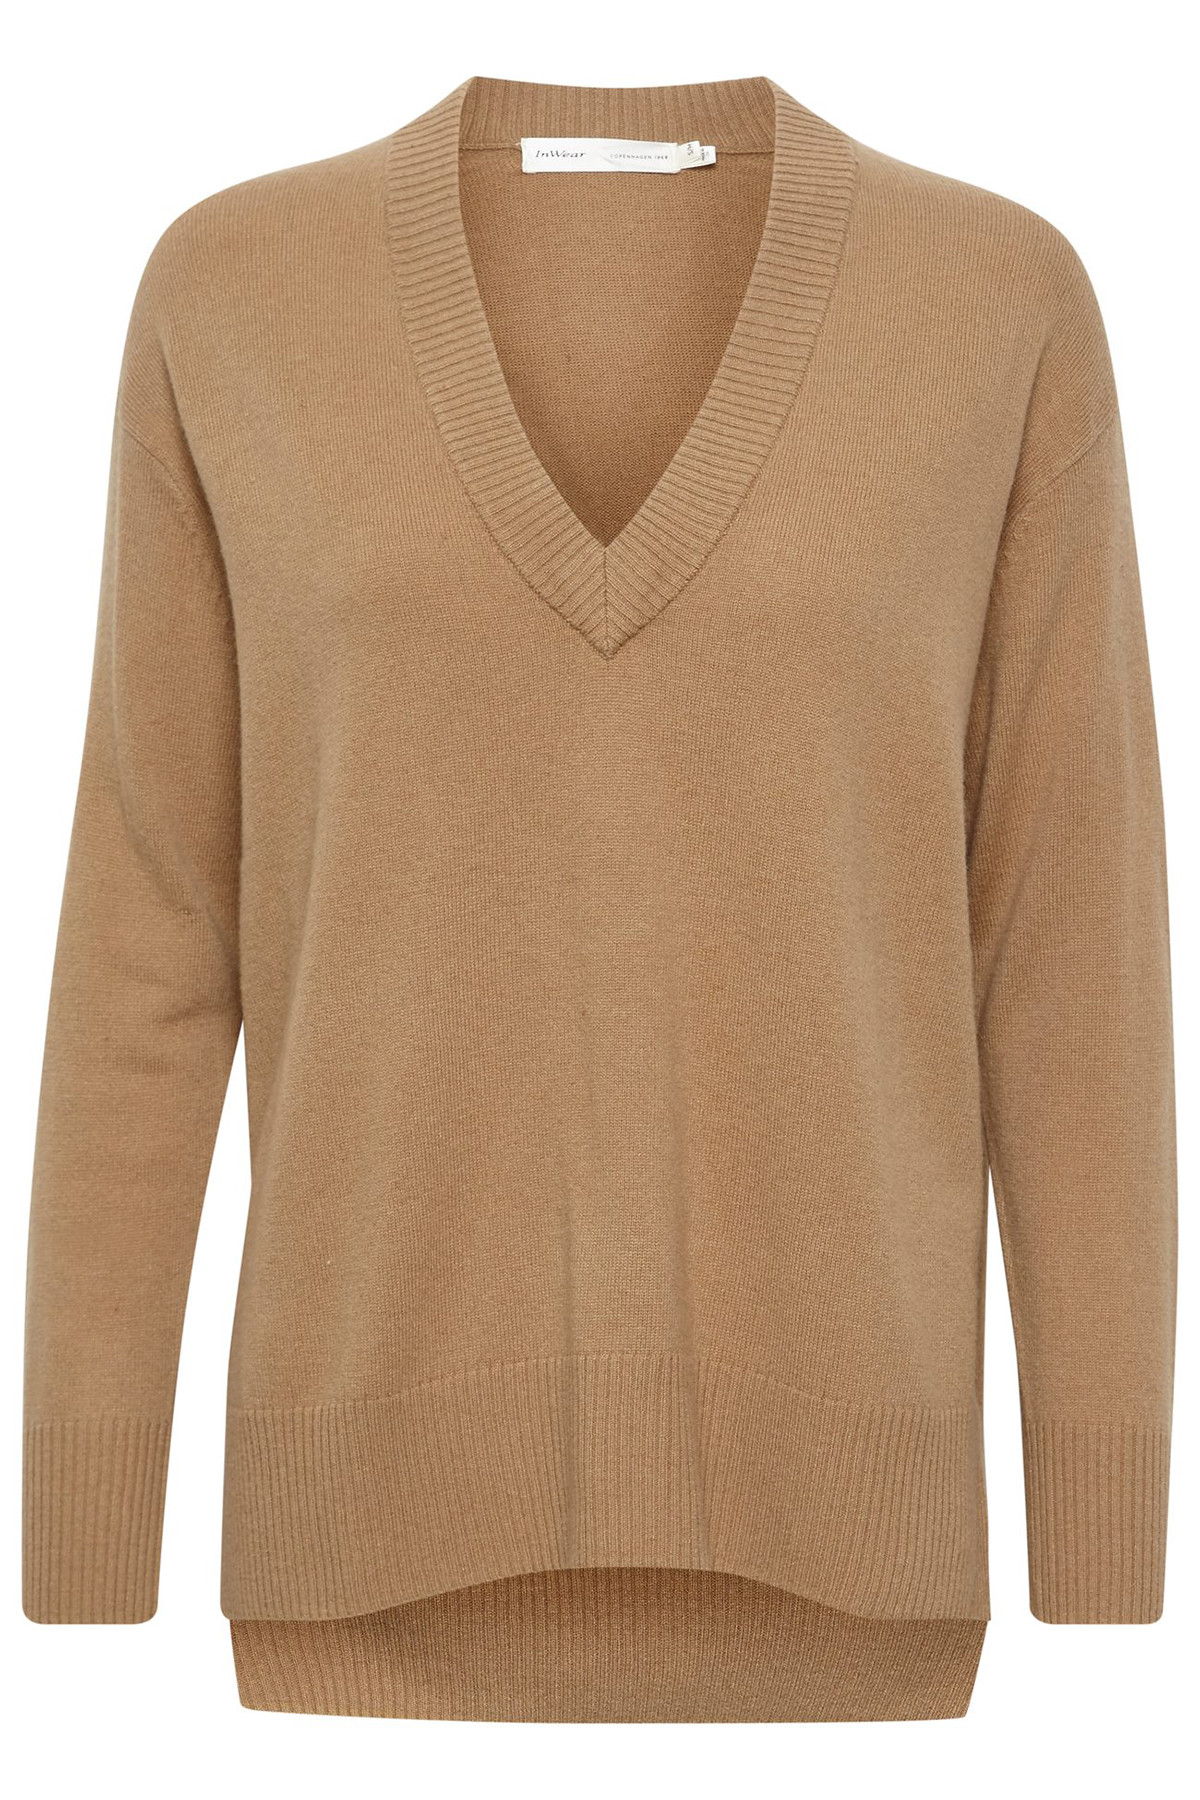 Image of   InWear IRISIW V-NECK PULLOVER 30104654 (Warm Camel 10117, S/M)